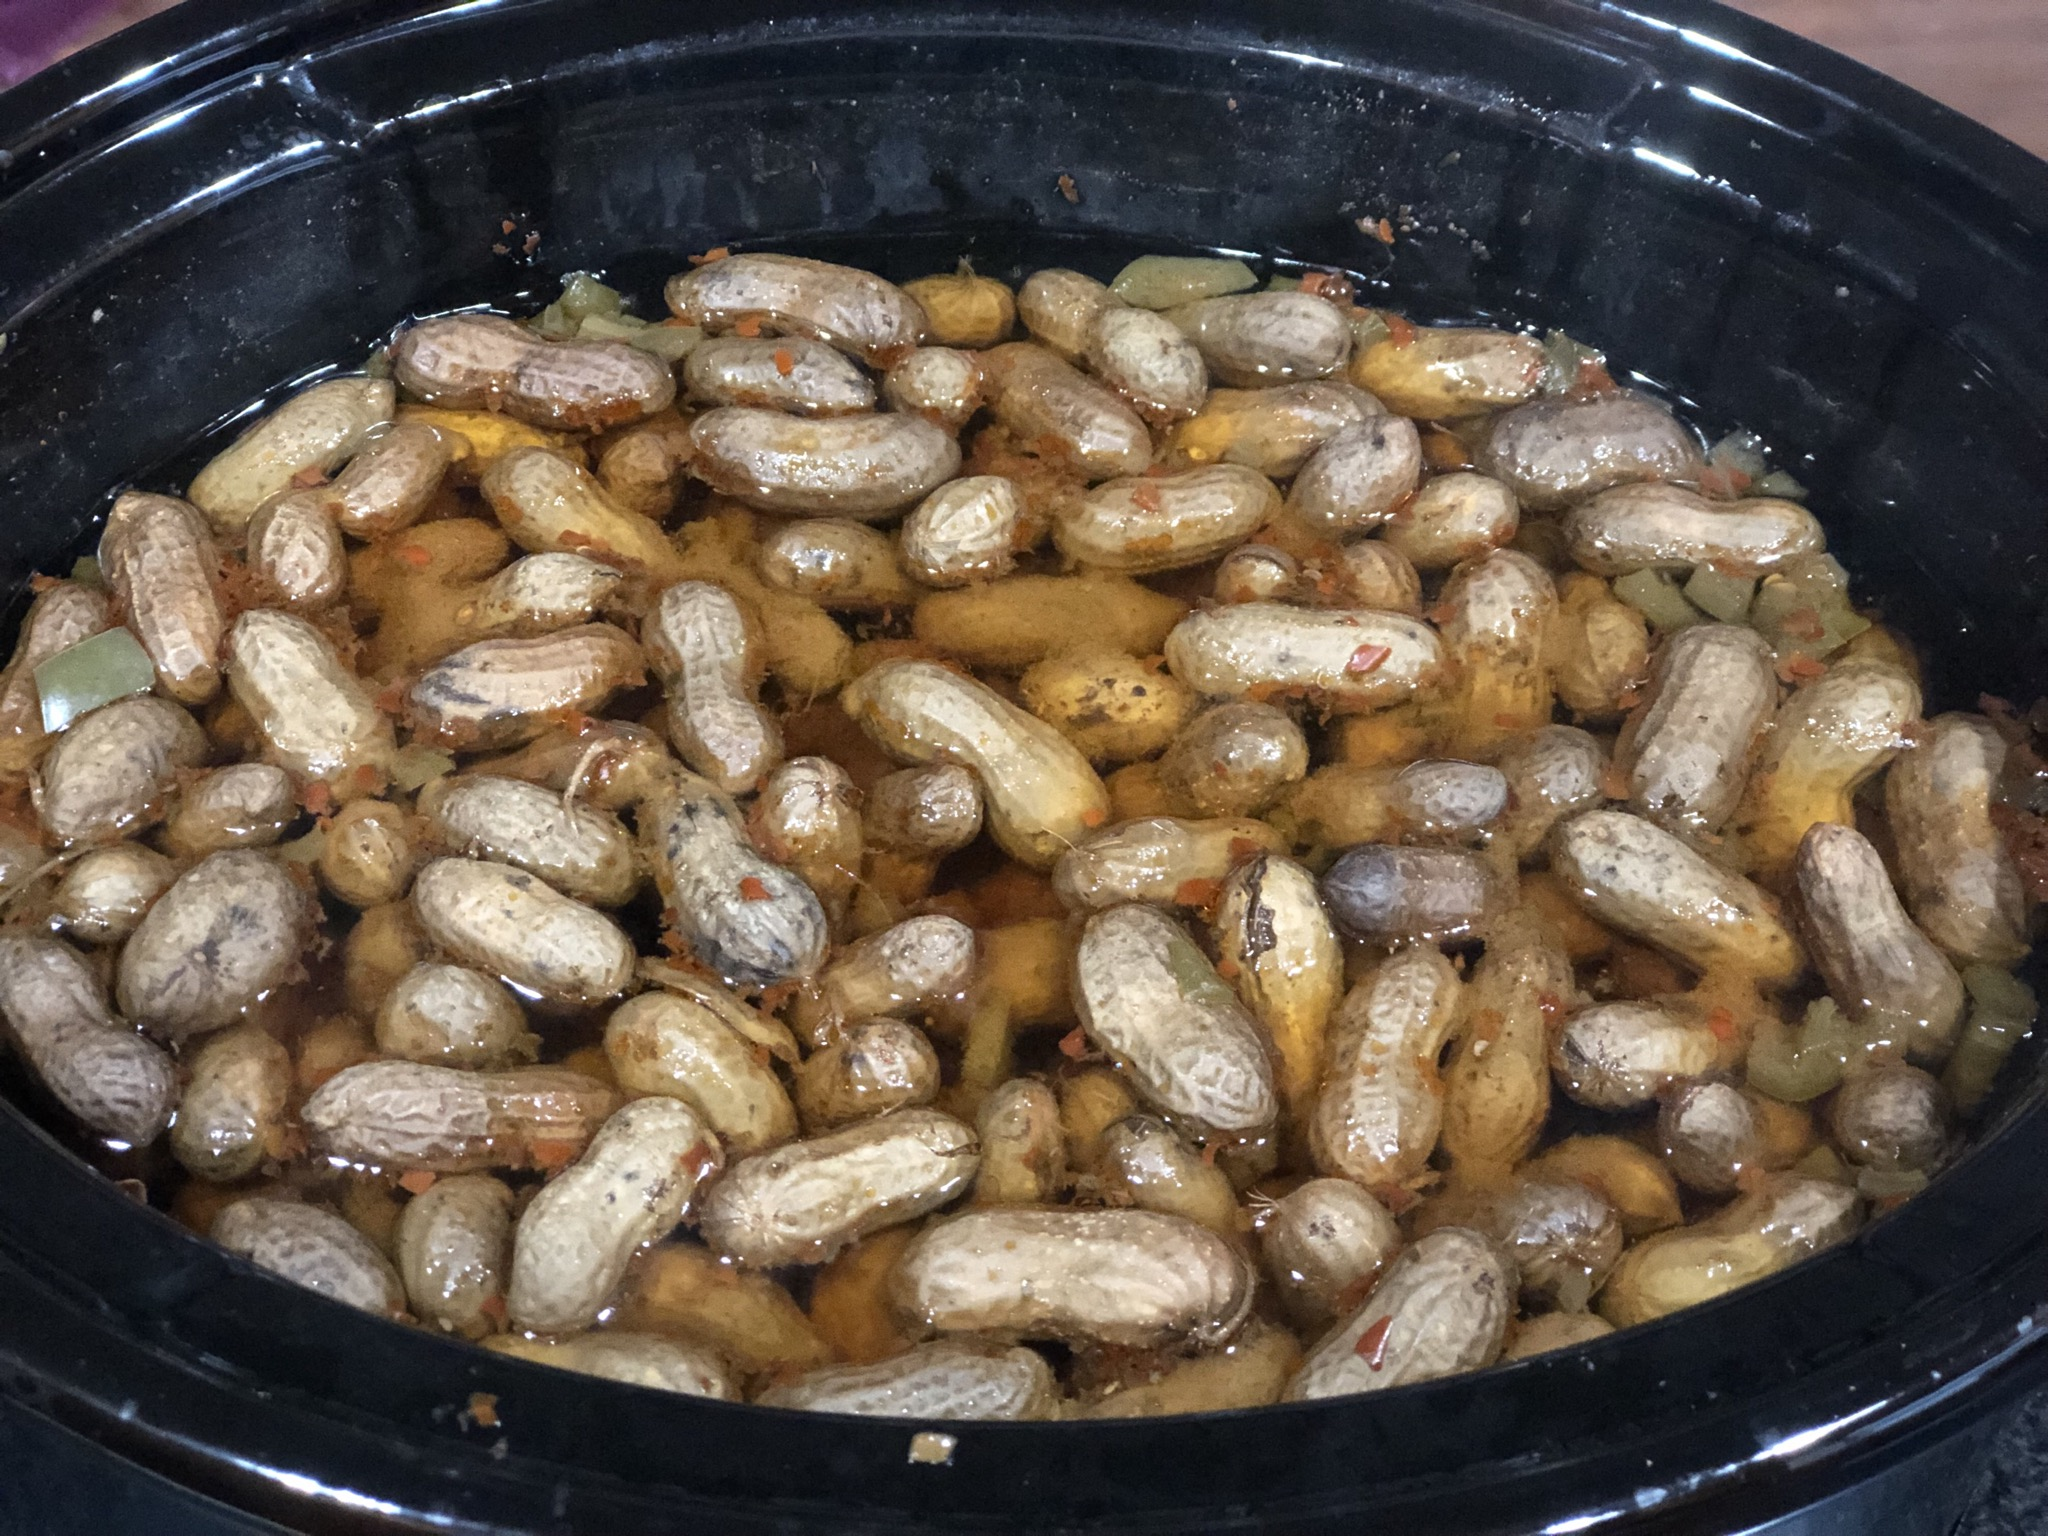 Crockpot Spicy Boiled Peanuts